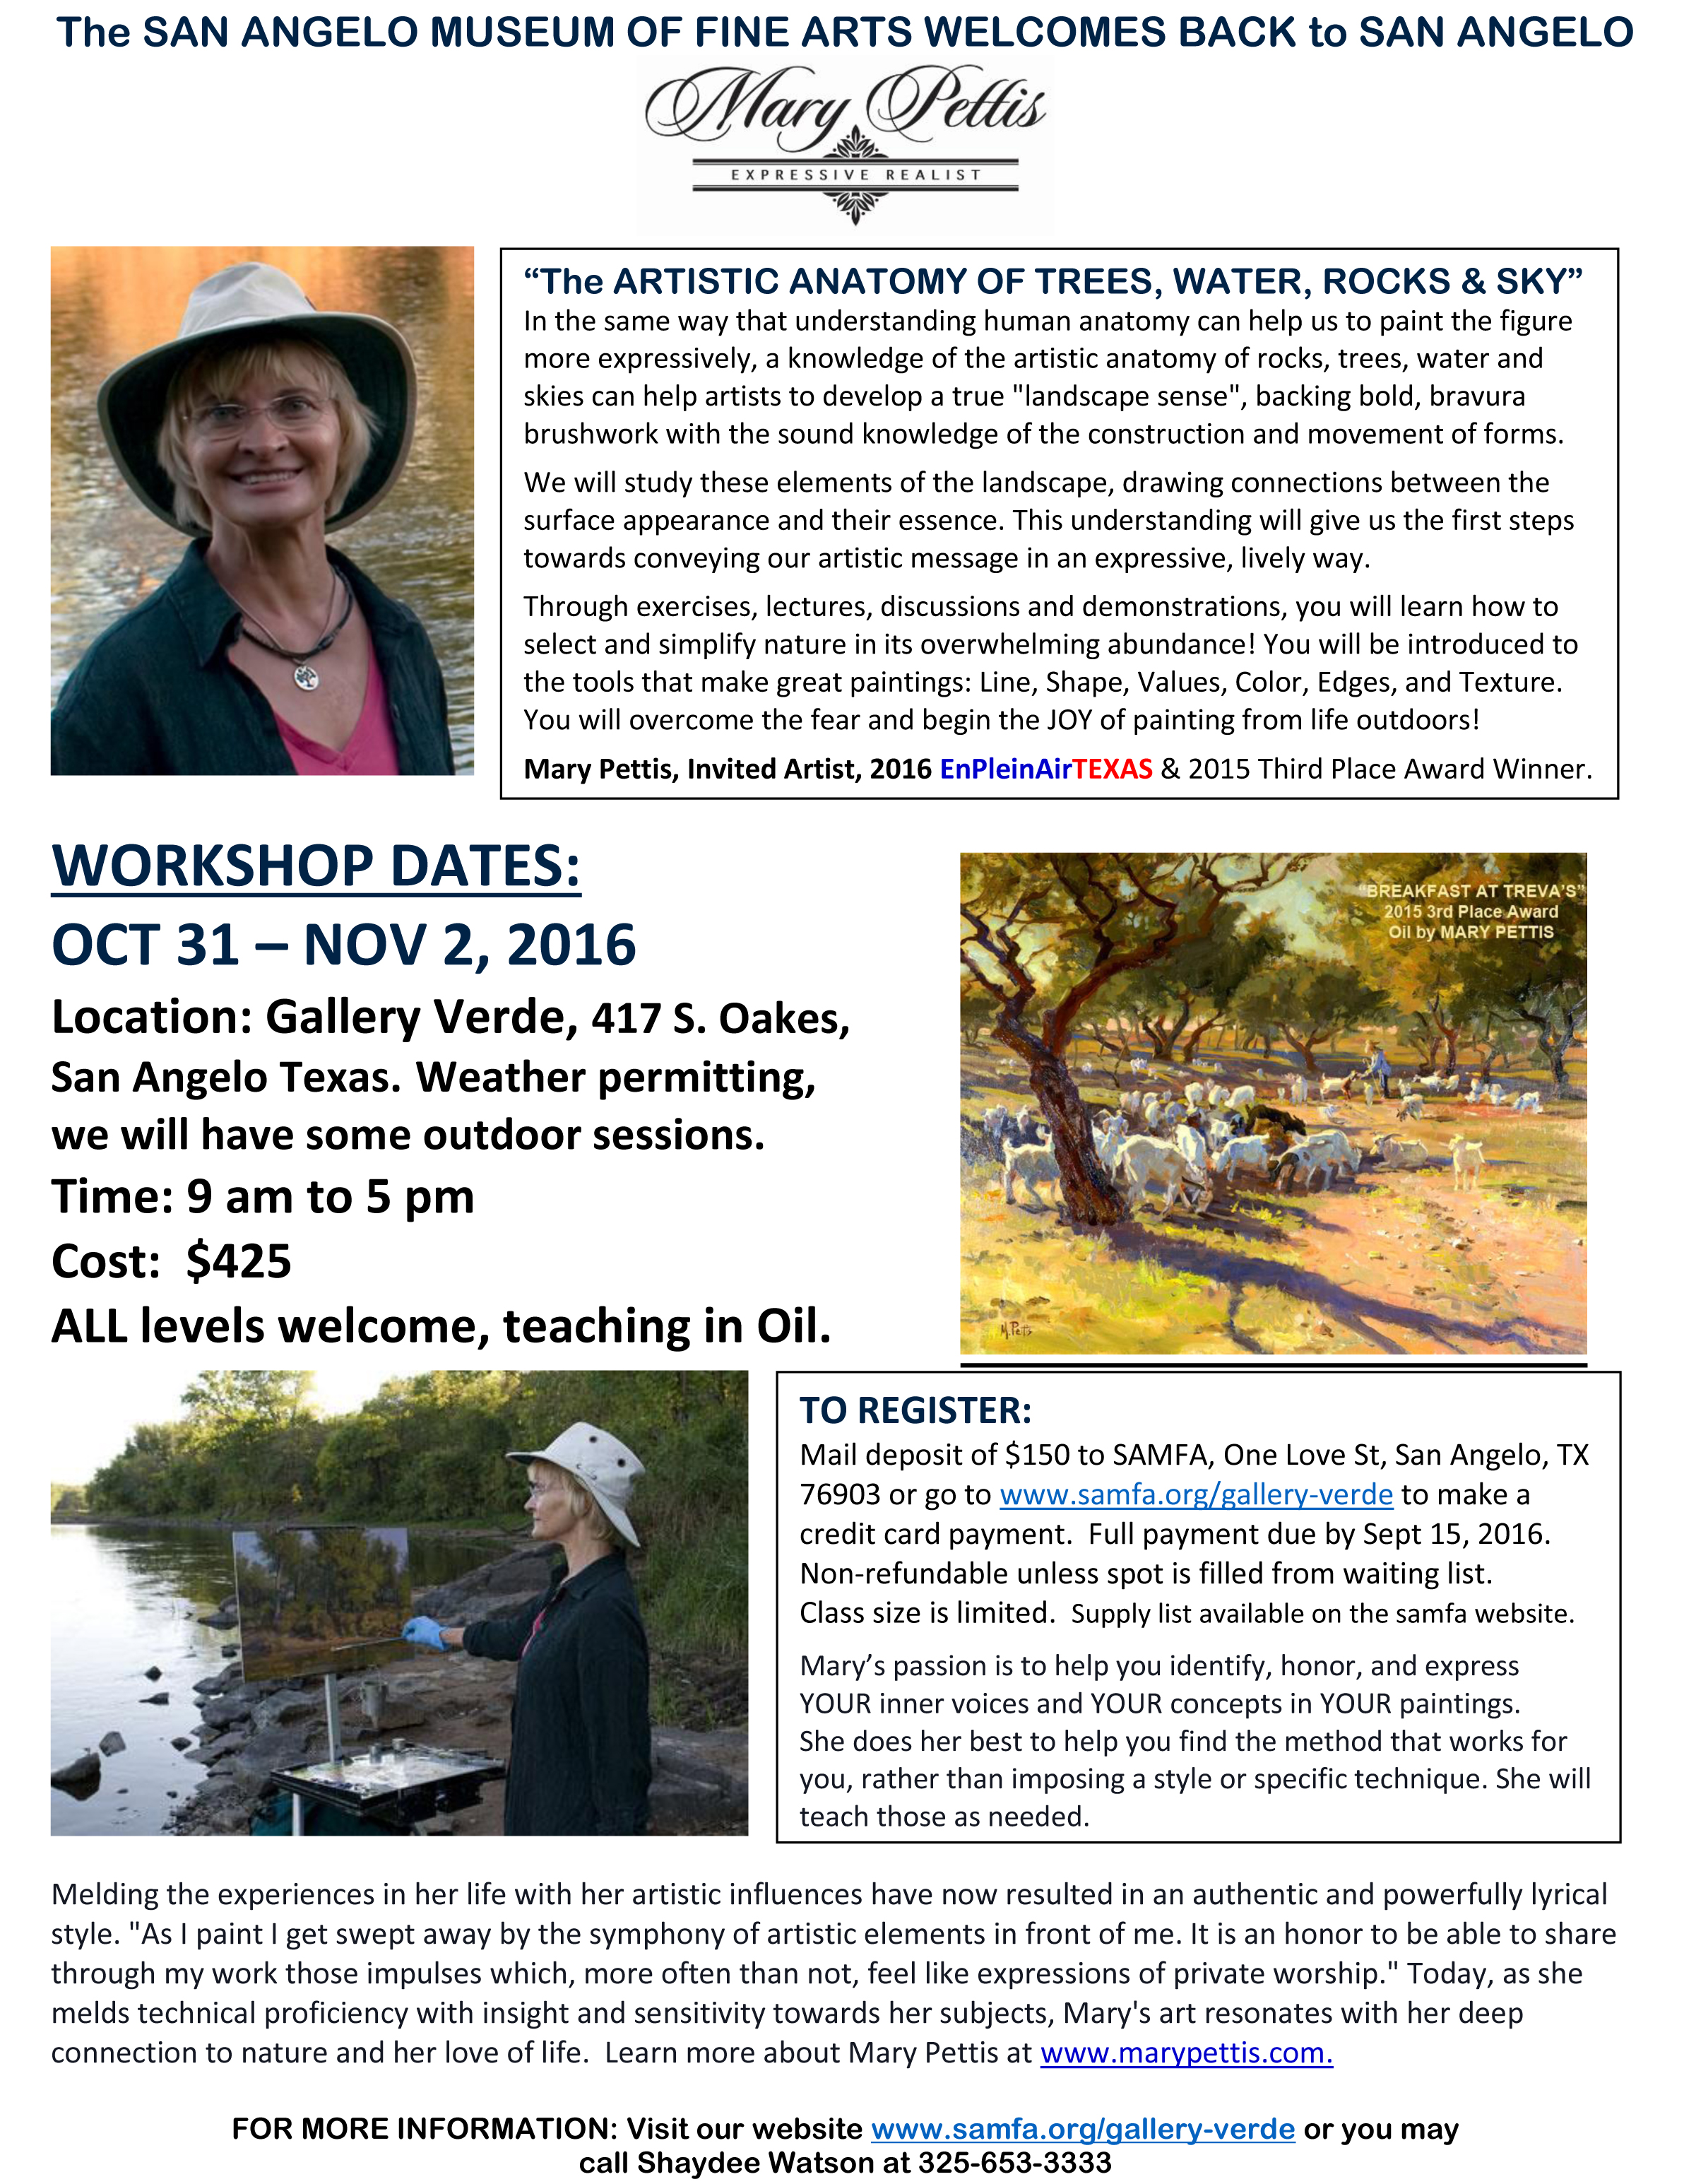 Mary Pettis Workshop Information San Angelo Museum Of Fine Arts